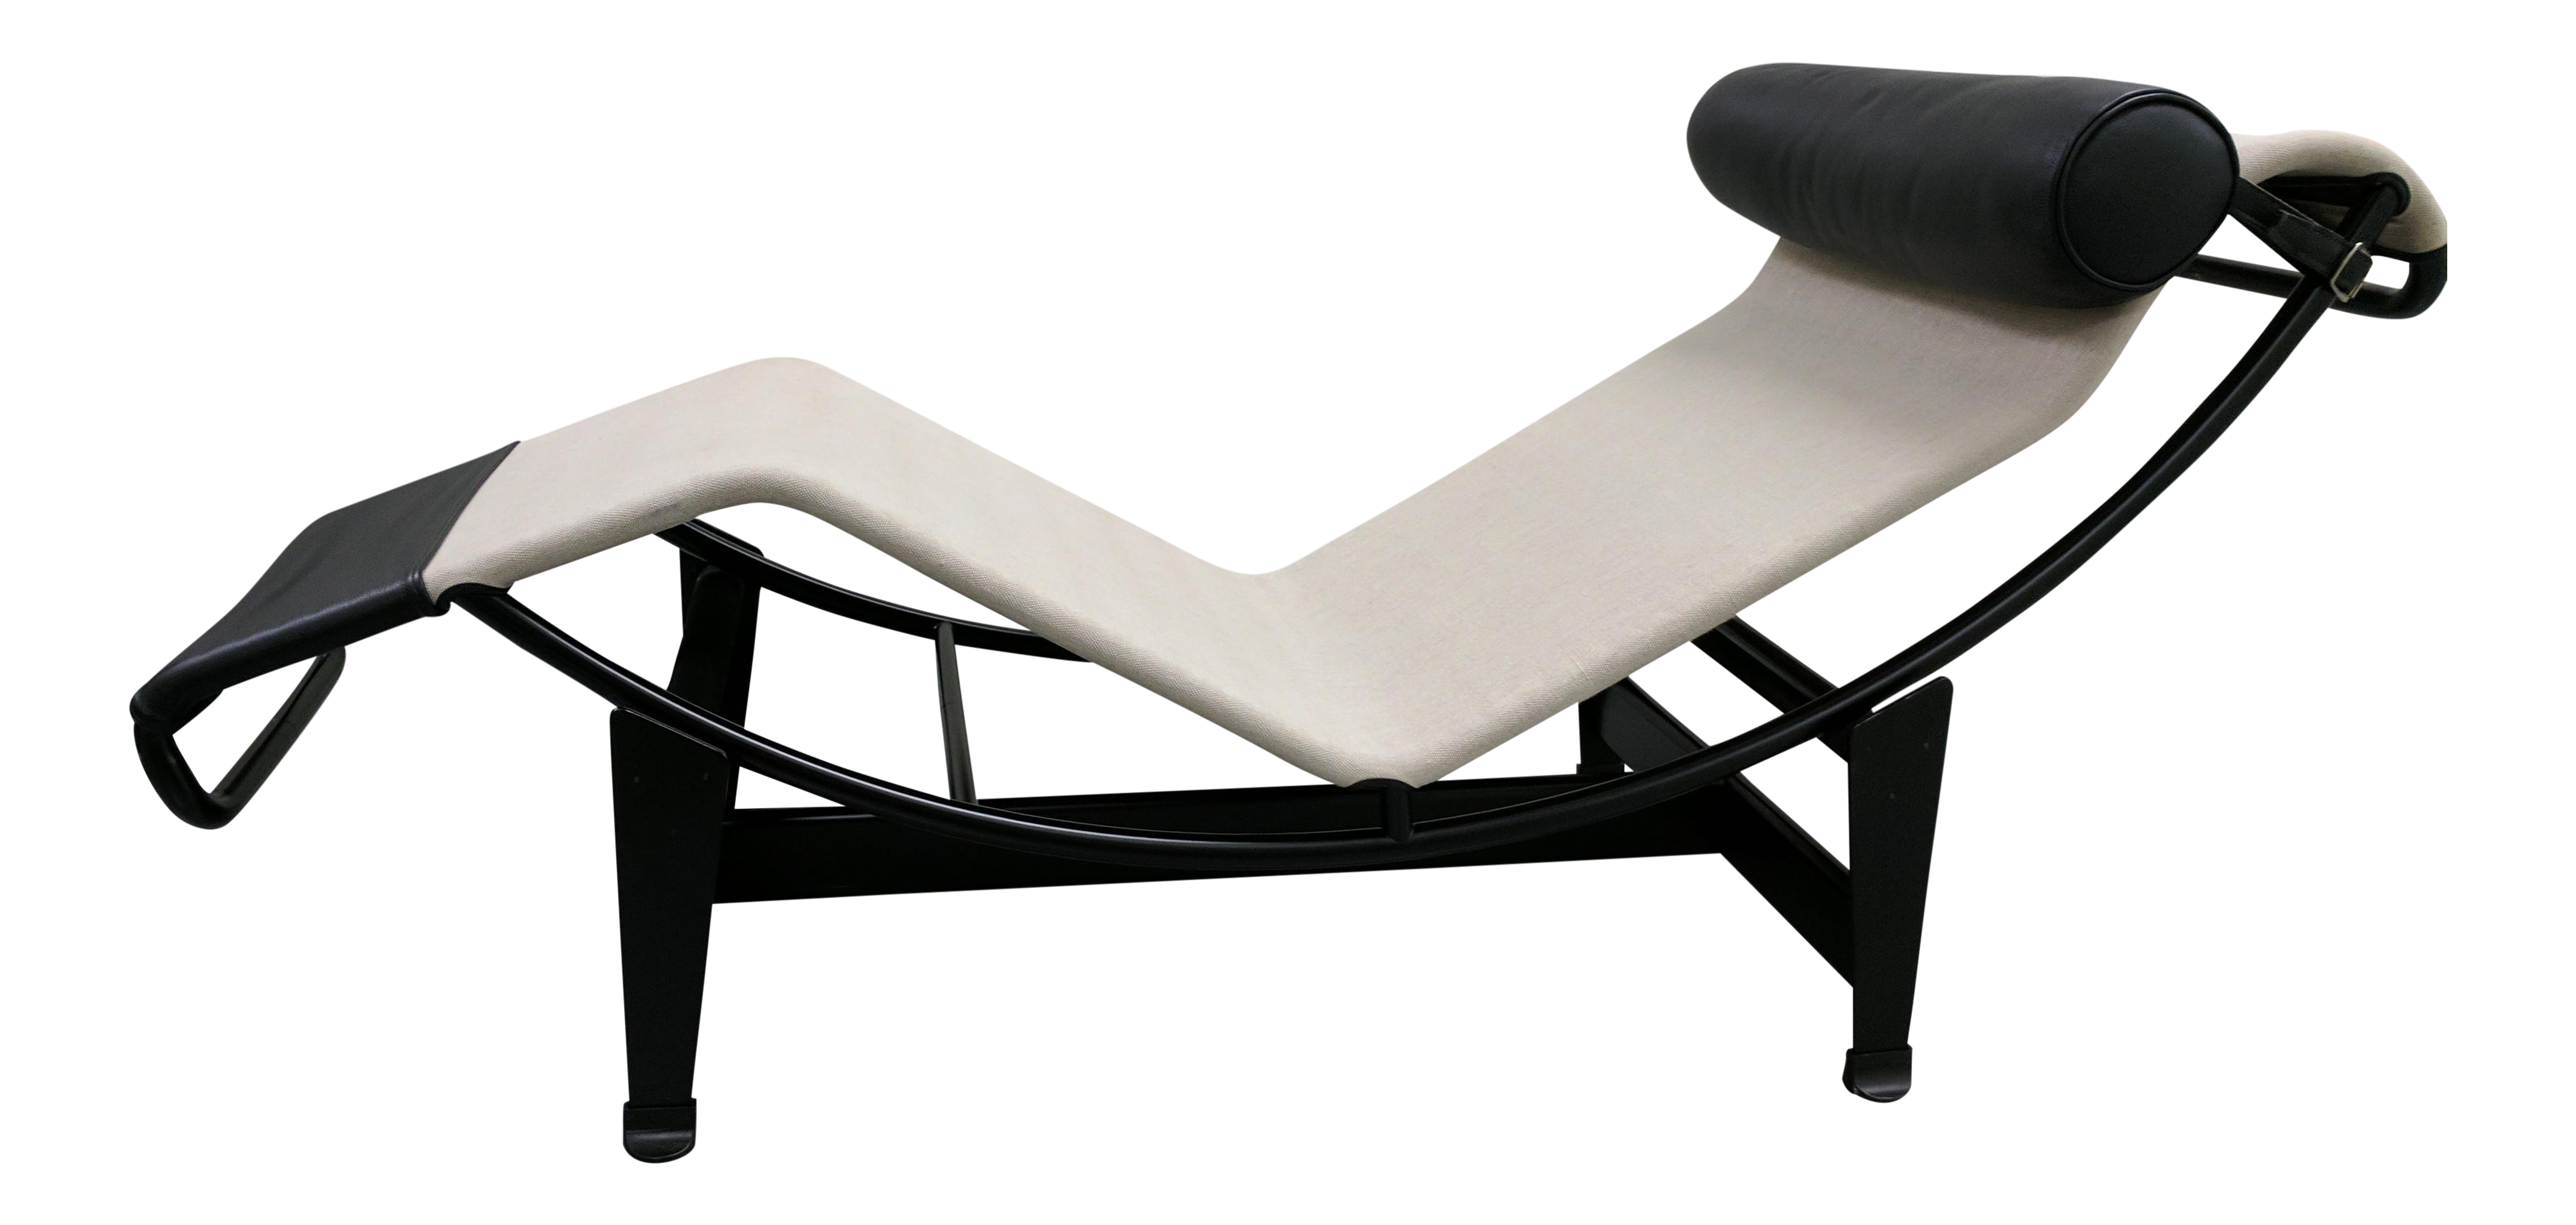 Le corbusier designed lc4 chaise longue chairish for Chaise longue by le corbusier